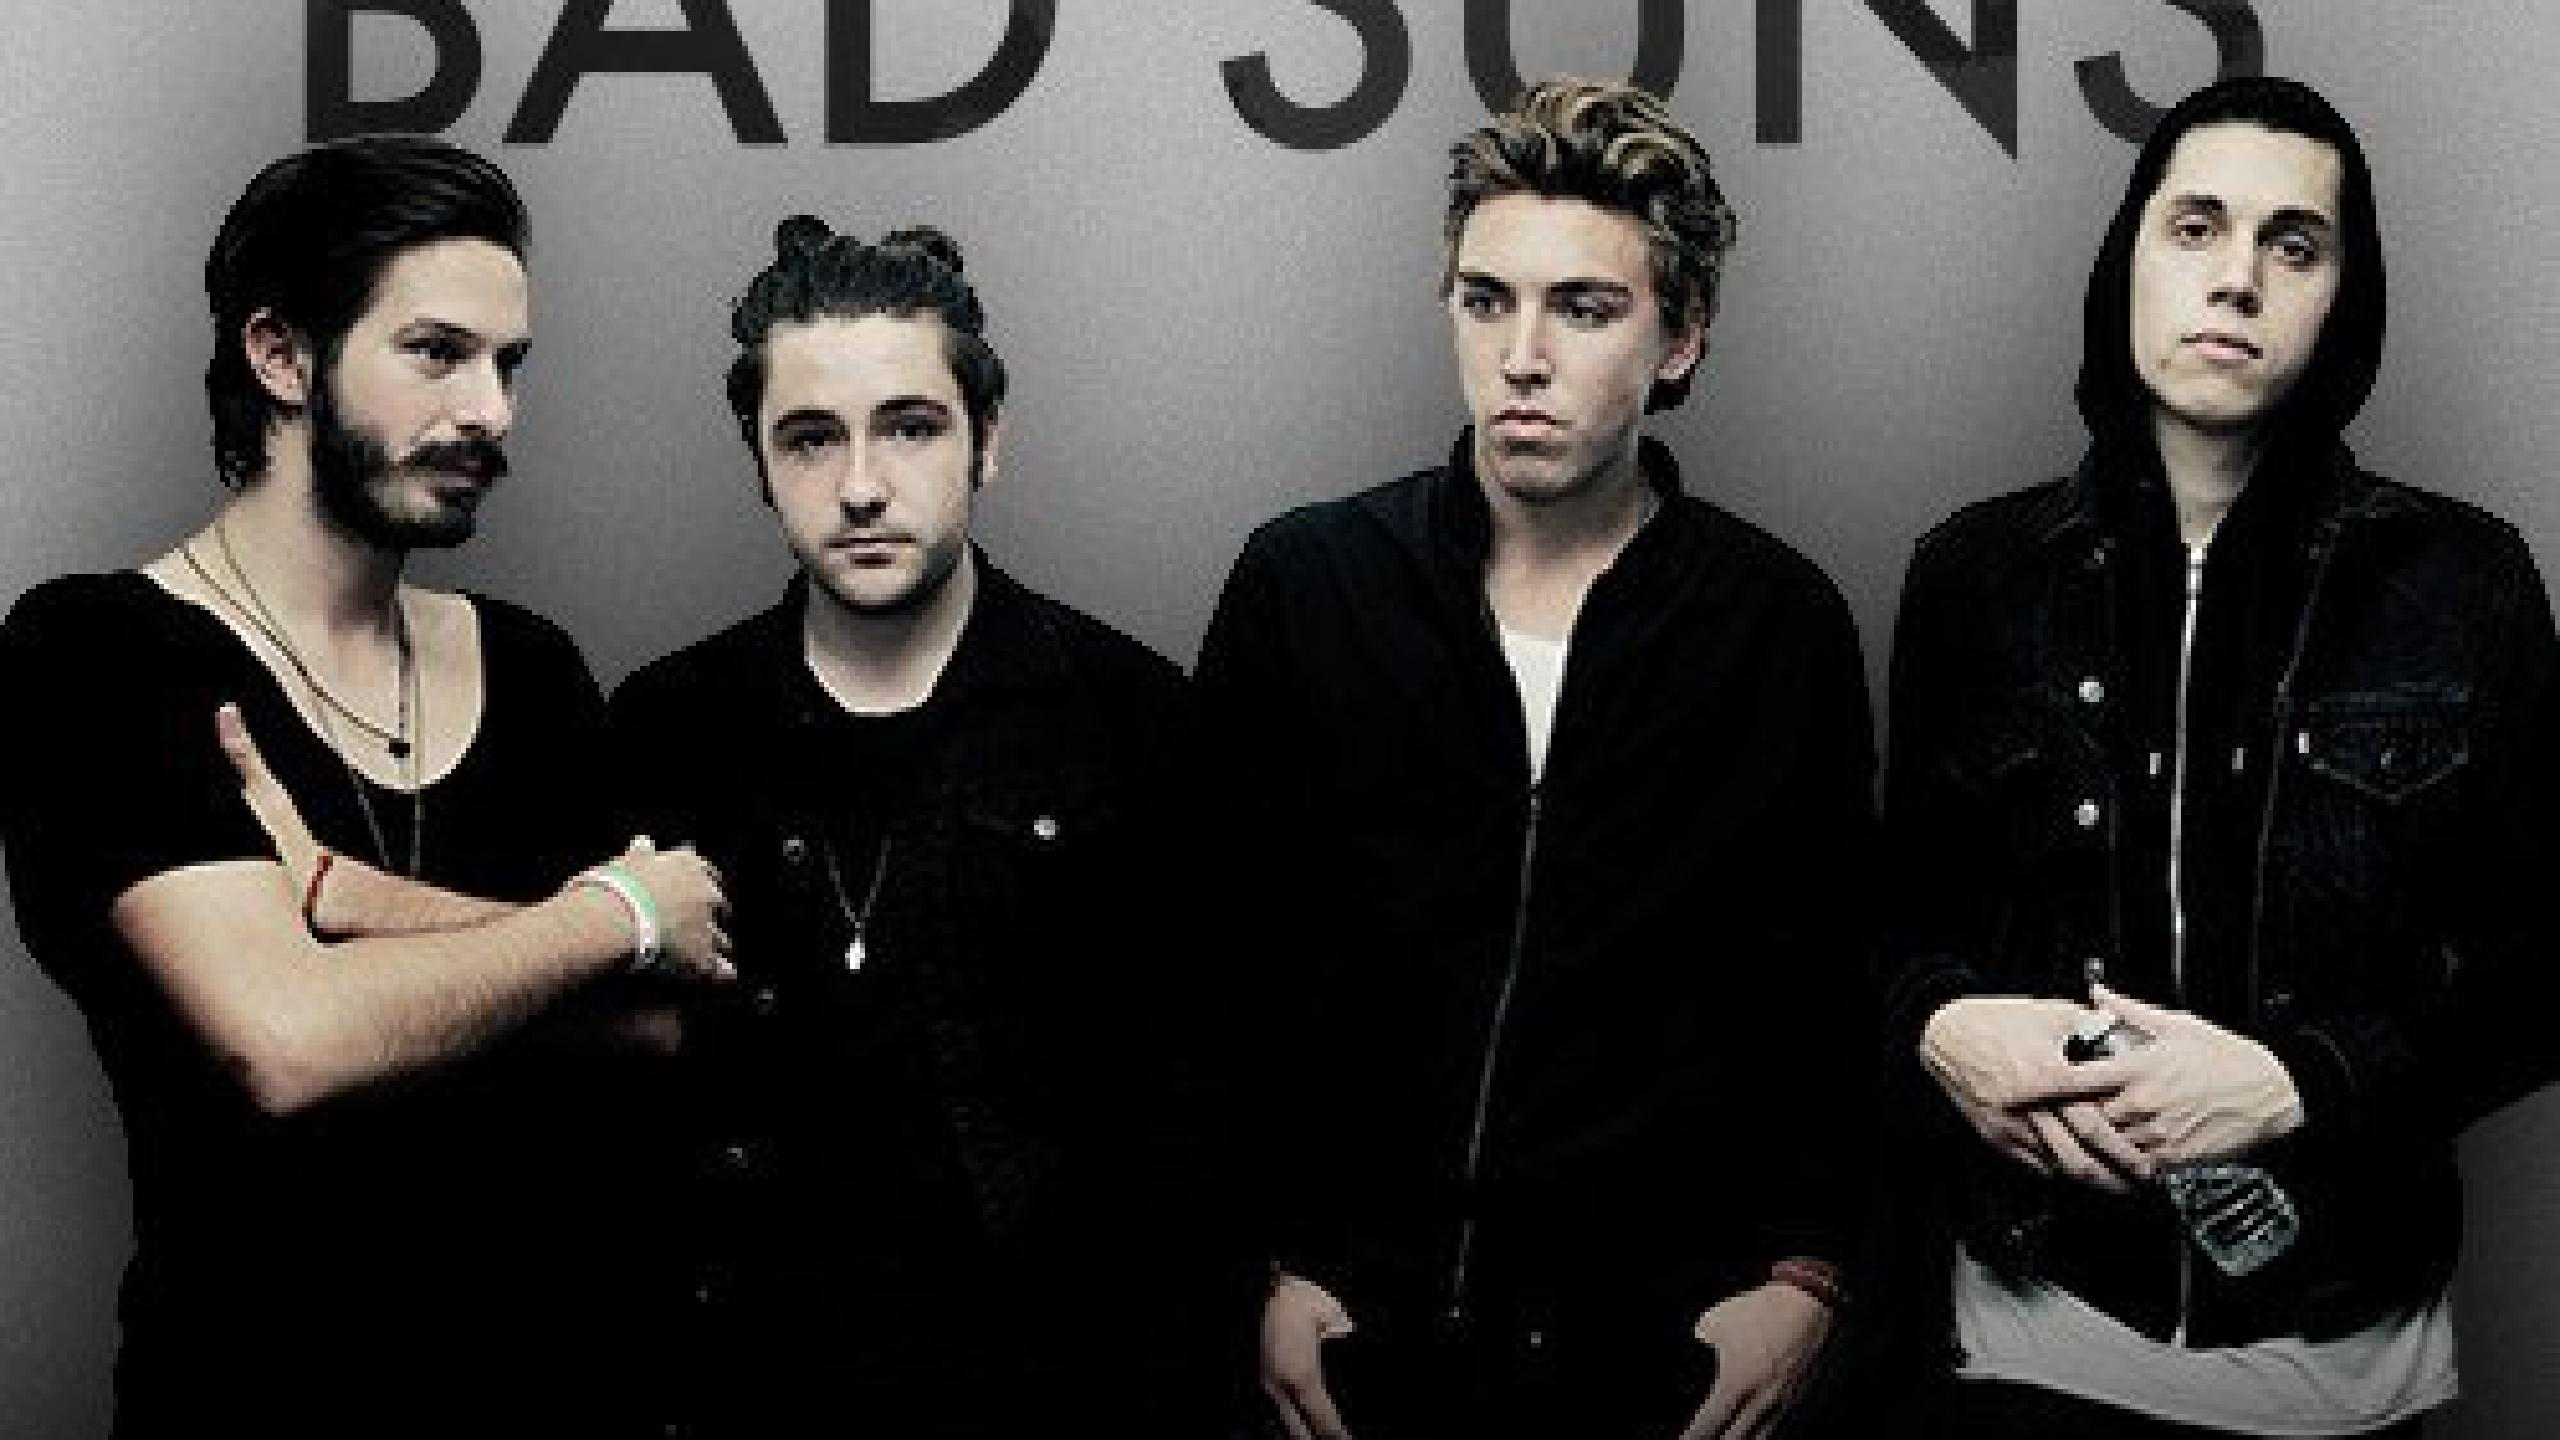 Bad Suns Tour 2020 Bad Suns tour dates 2019 2020. Bad Suns tickets and concerts